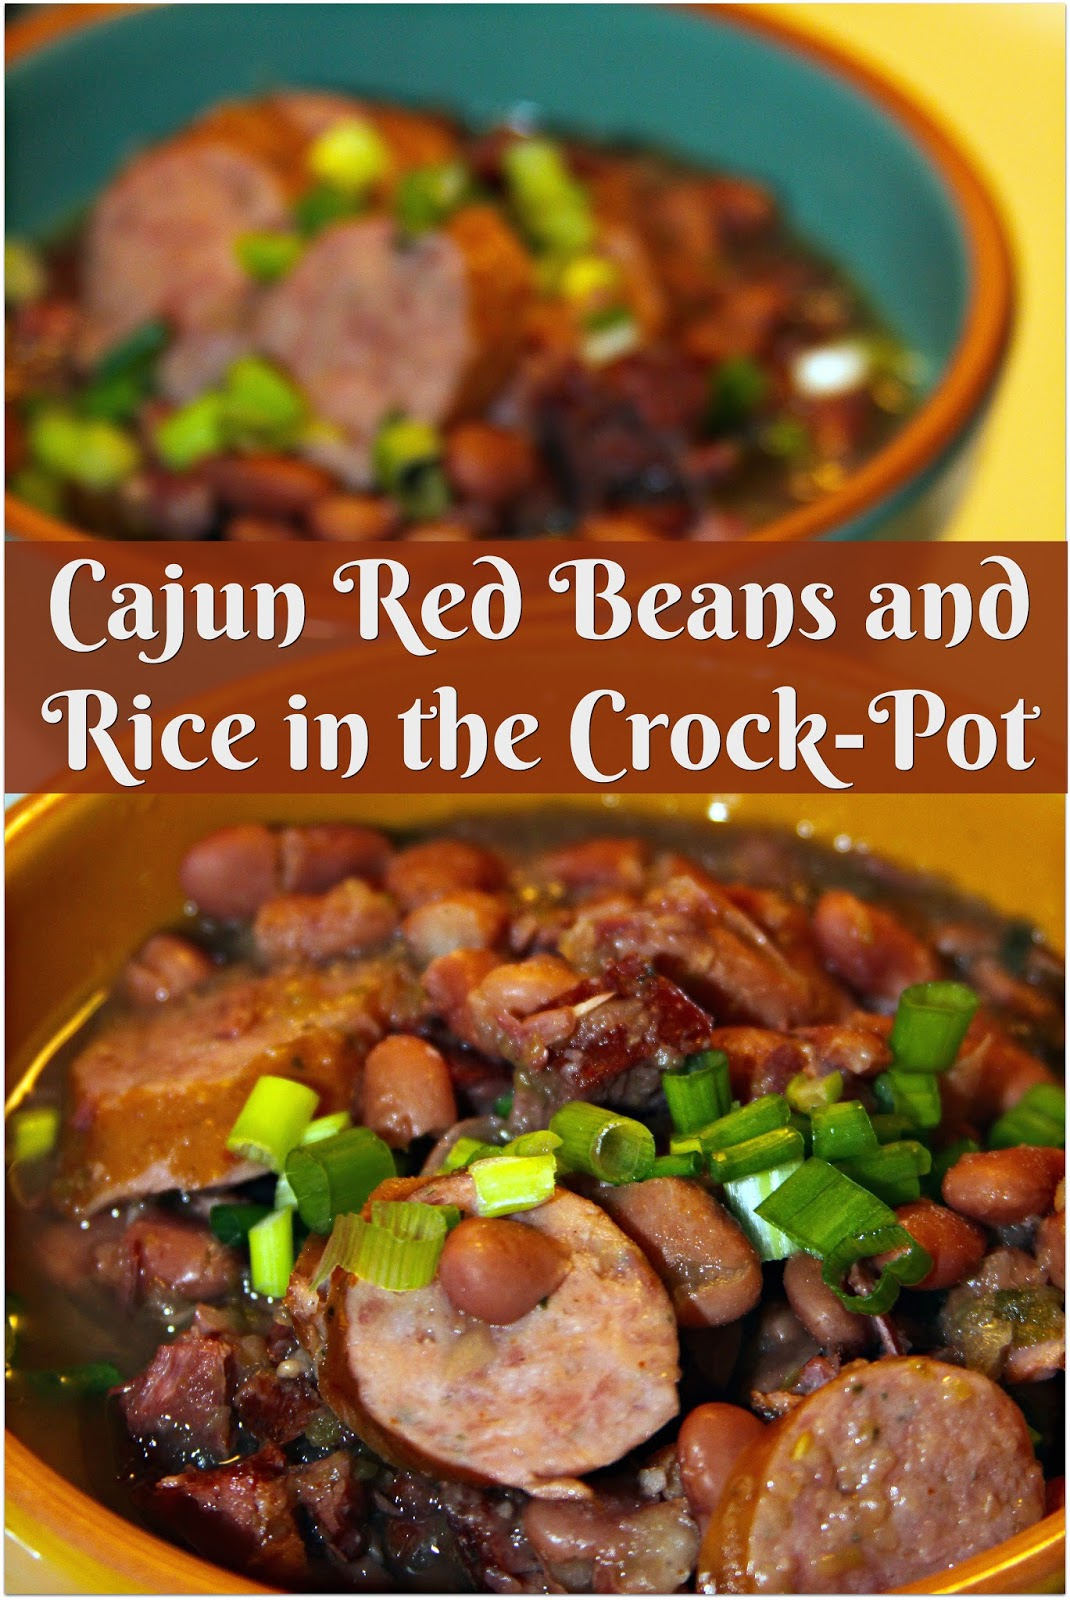 Cajun Red Beans And Rice In The Crock Pot For The Love Of Food